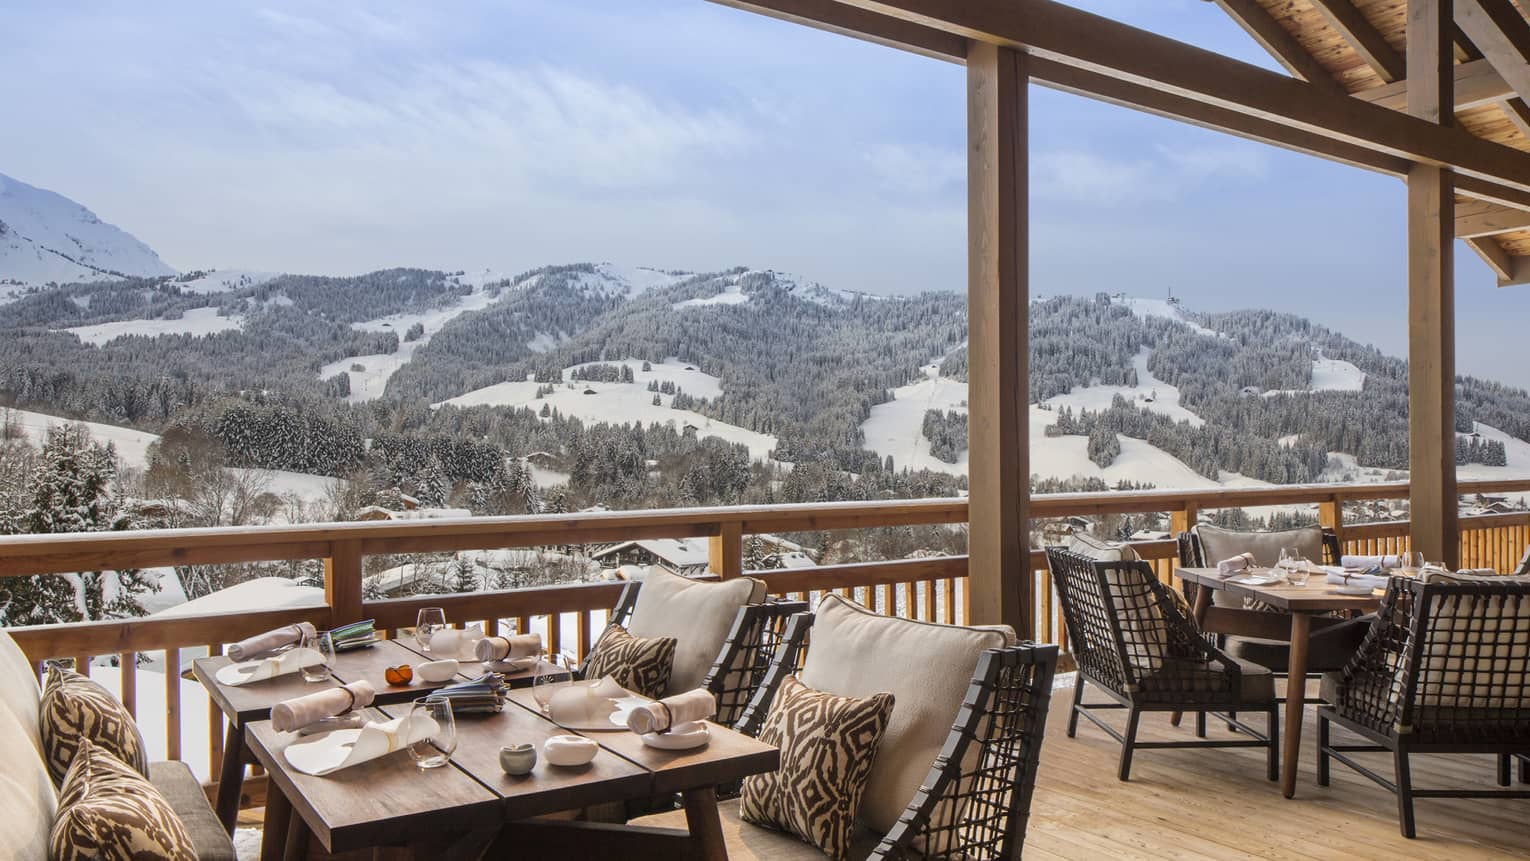 Terrasse Park Hotel Megeve Four Seasons Hotels And Resorts Luxury Hotels Four Seasons